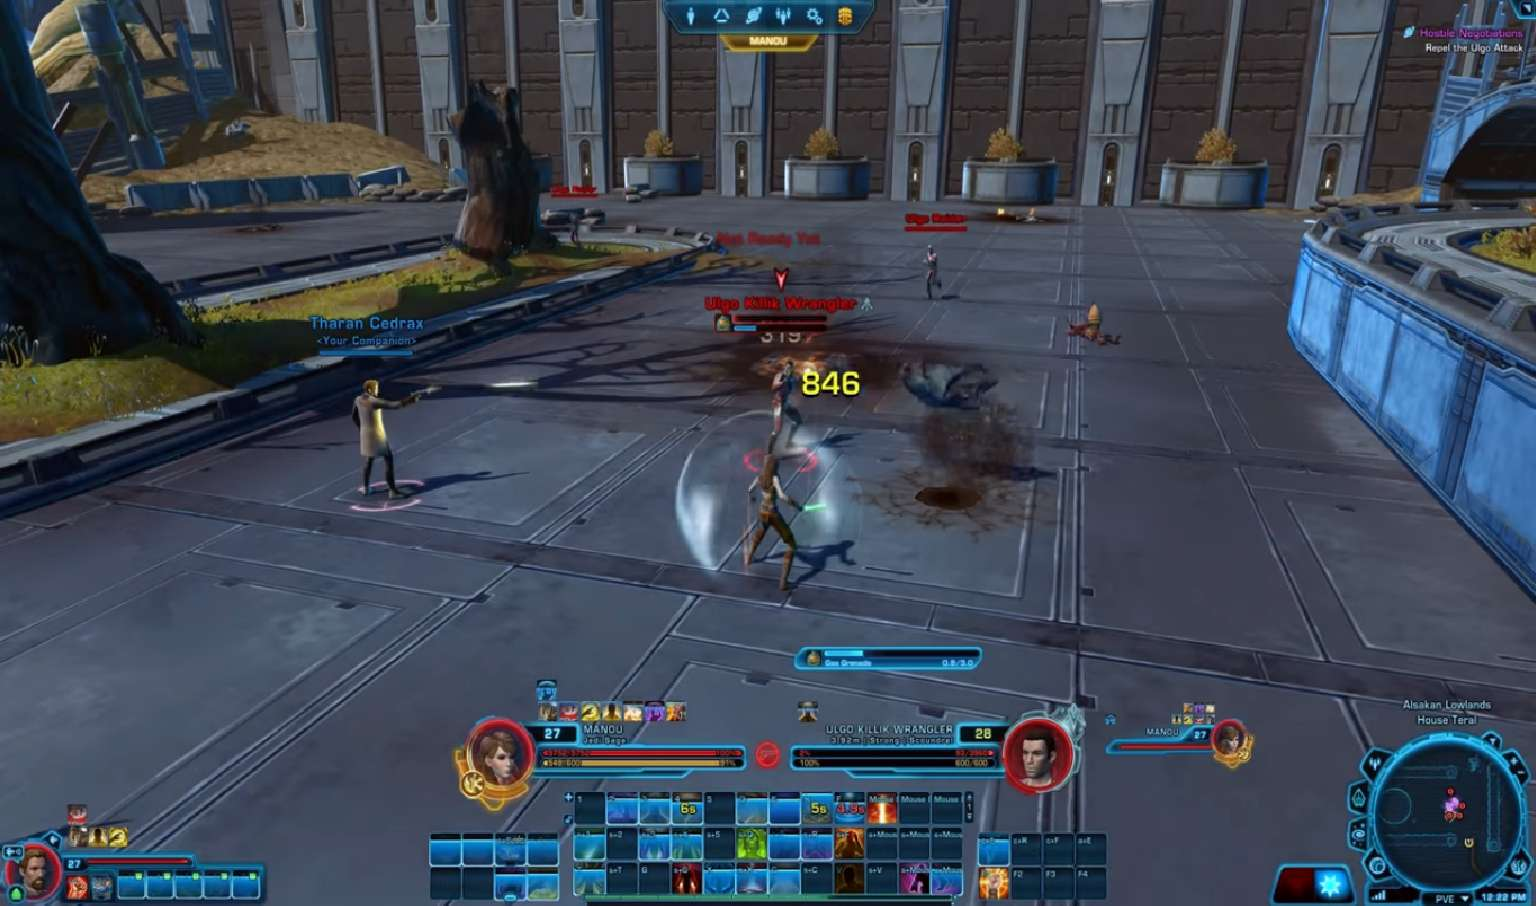 Star Wars The Old Republic Finishes Testing On Alderaan Stronghold Thanks To Player Feedback